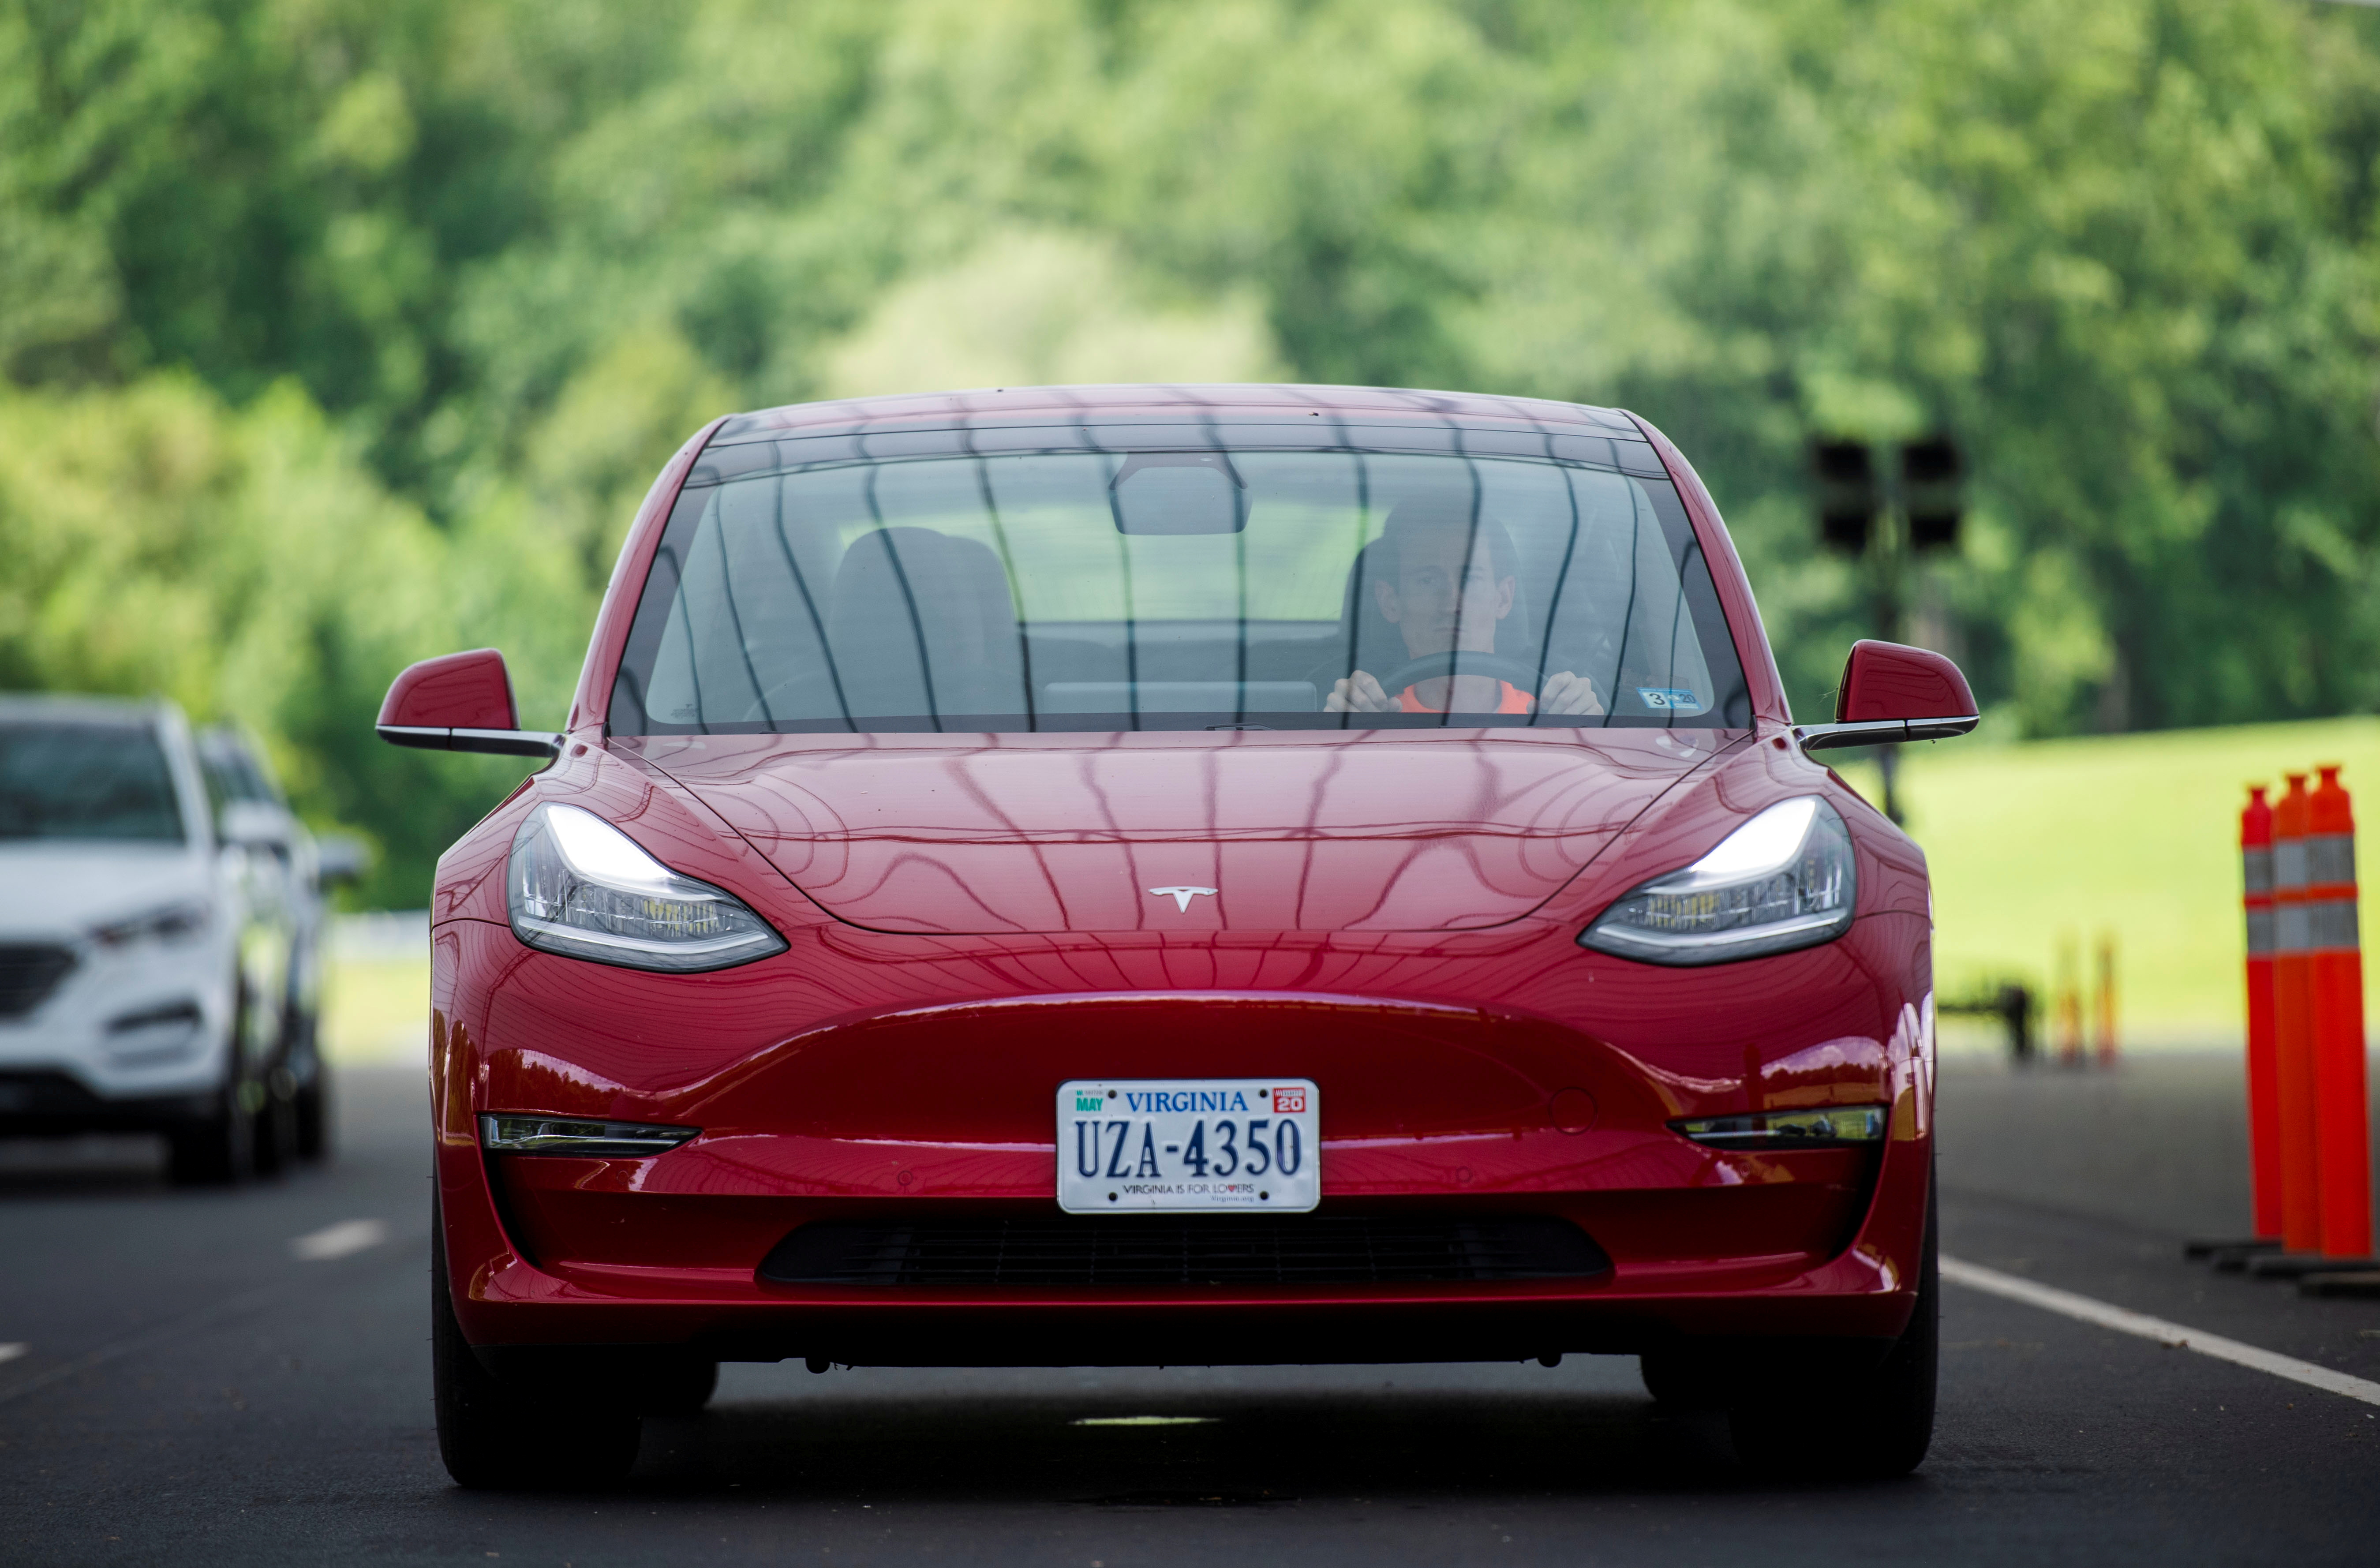 Joe Young, a media relations associate for the Insurance Institute for Highway Safety (IIHS), demonstrates a front crash prevention test on a 2018 Tesla Model 3 at the IIHS-HLDI Vehicle Research Center in Ruckersville, Virginia, U.S., July 22, 2019. REUTERS/Amanda Voisard/File Photo